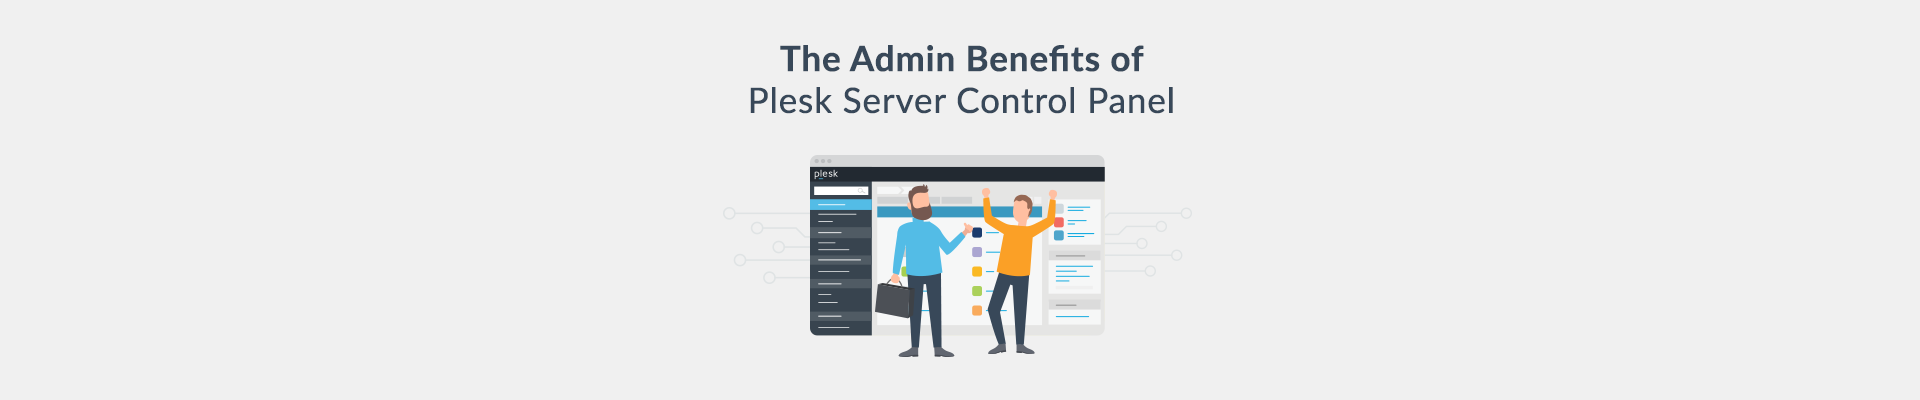 Admin Benefits of the Plesk Server Control Panel - Plesk